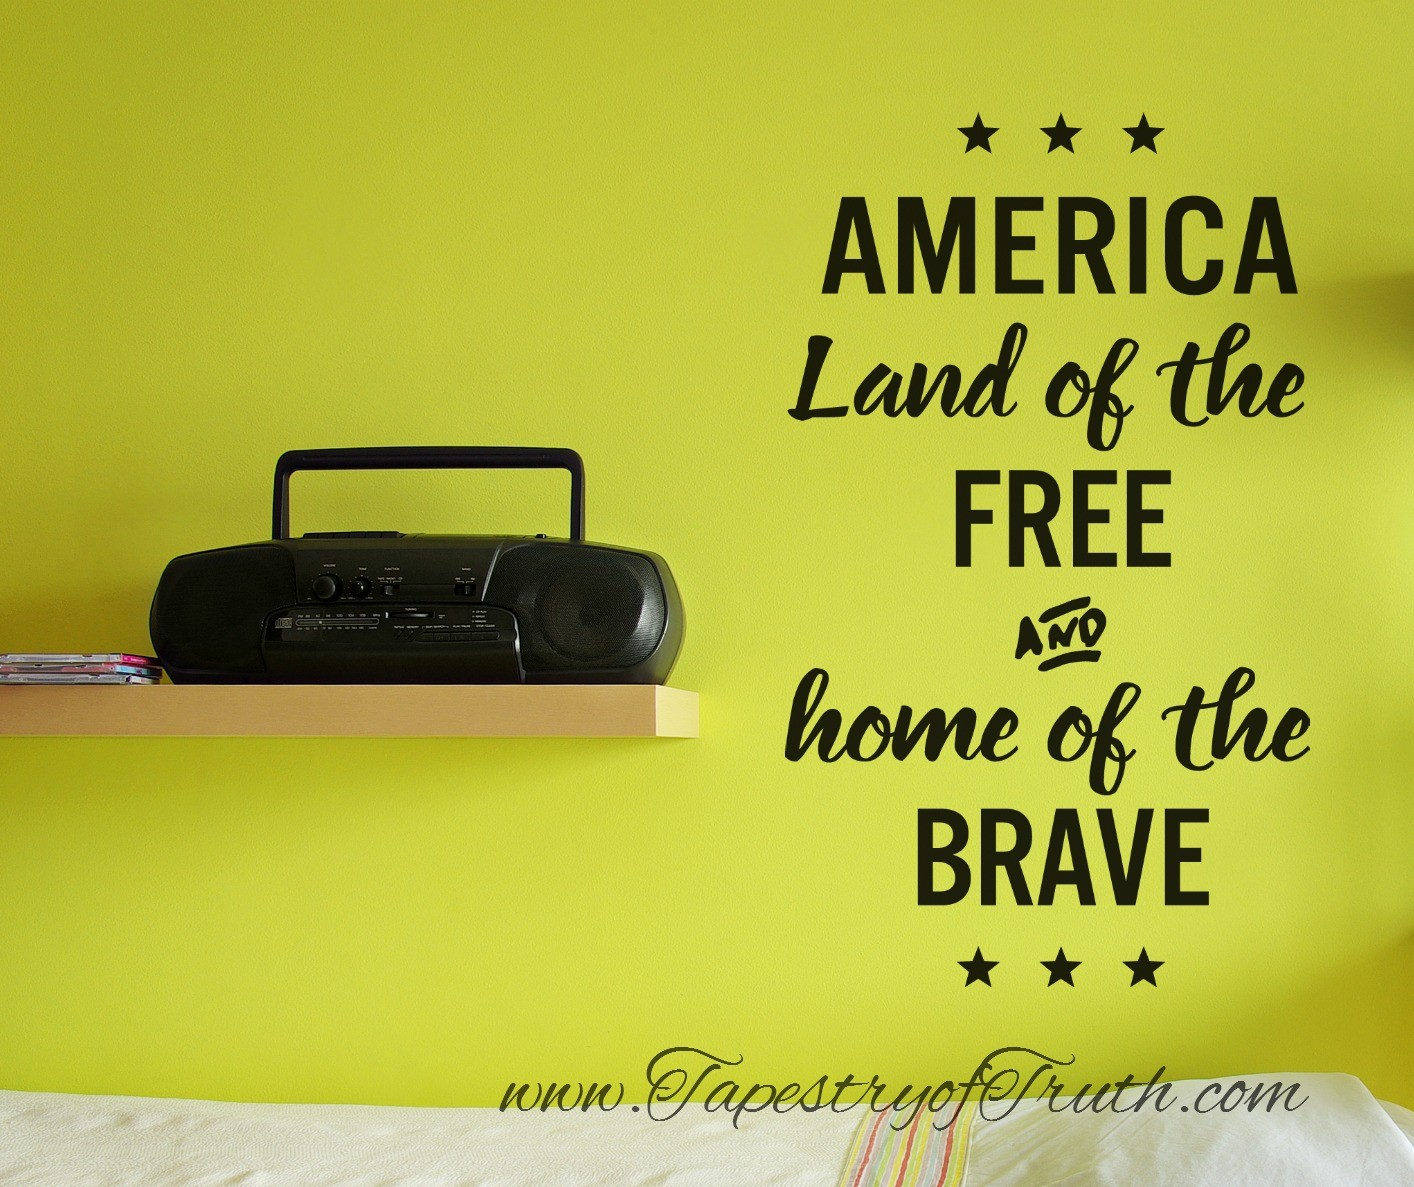 America - Land of the Free and Home of the Brave